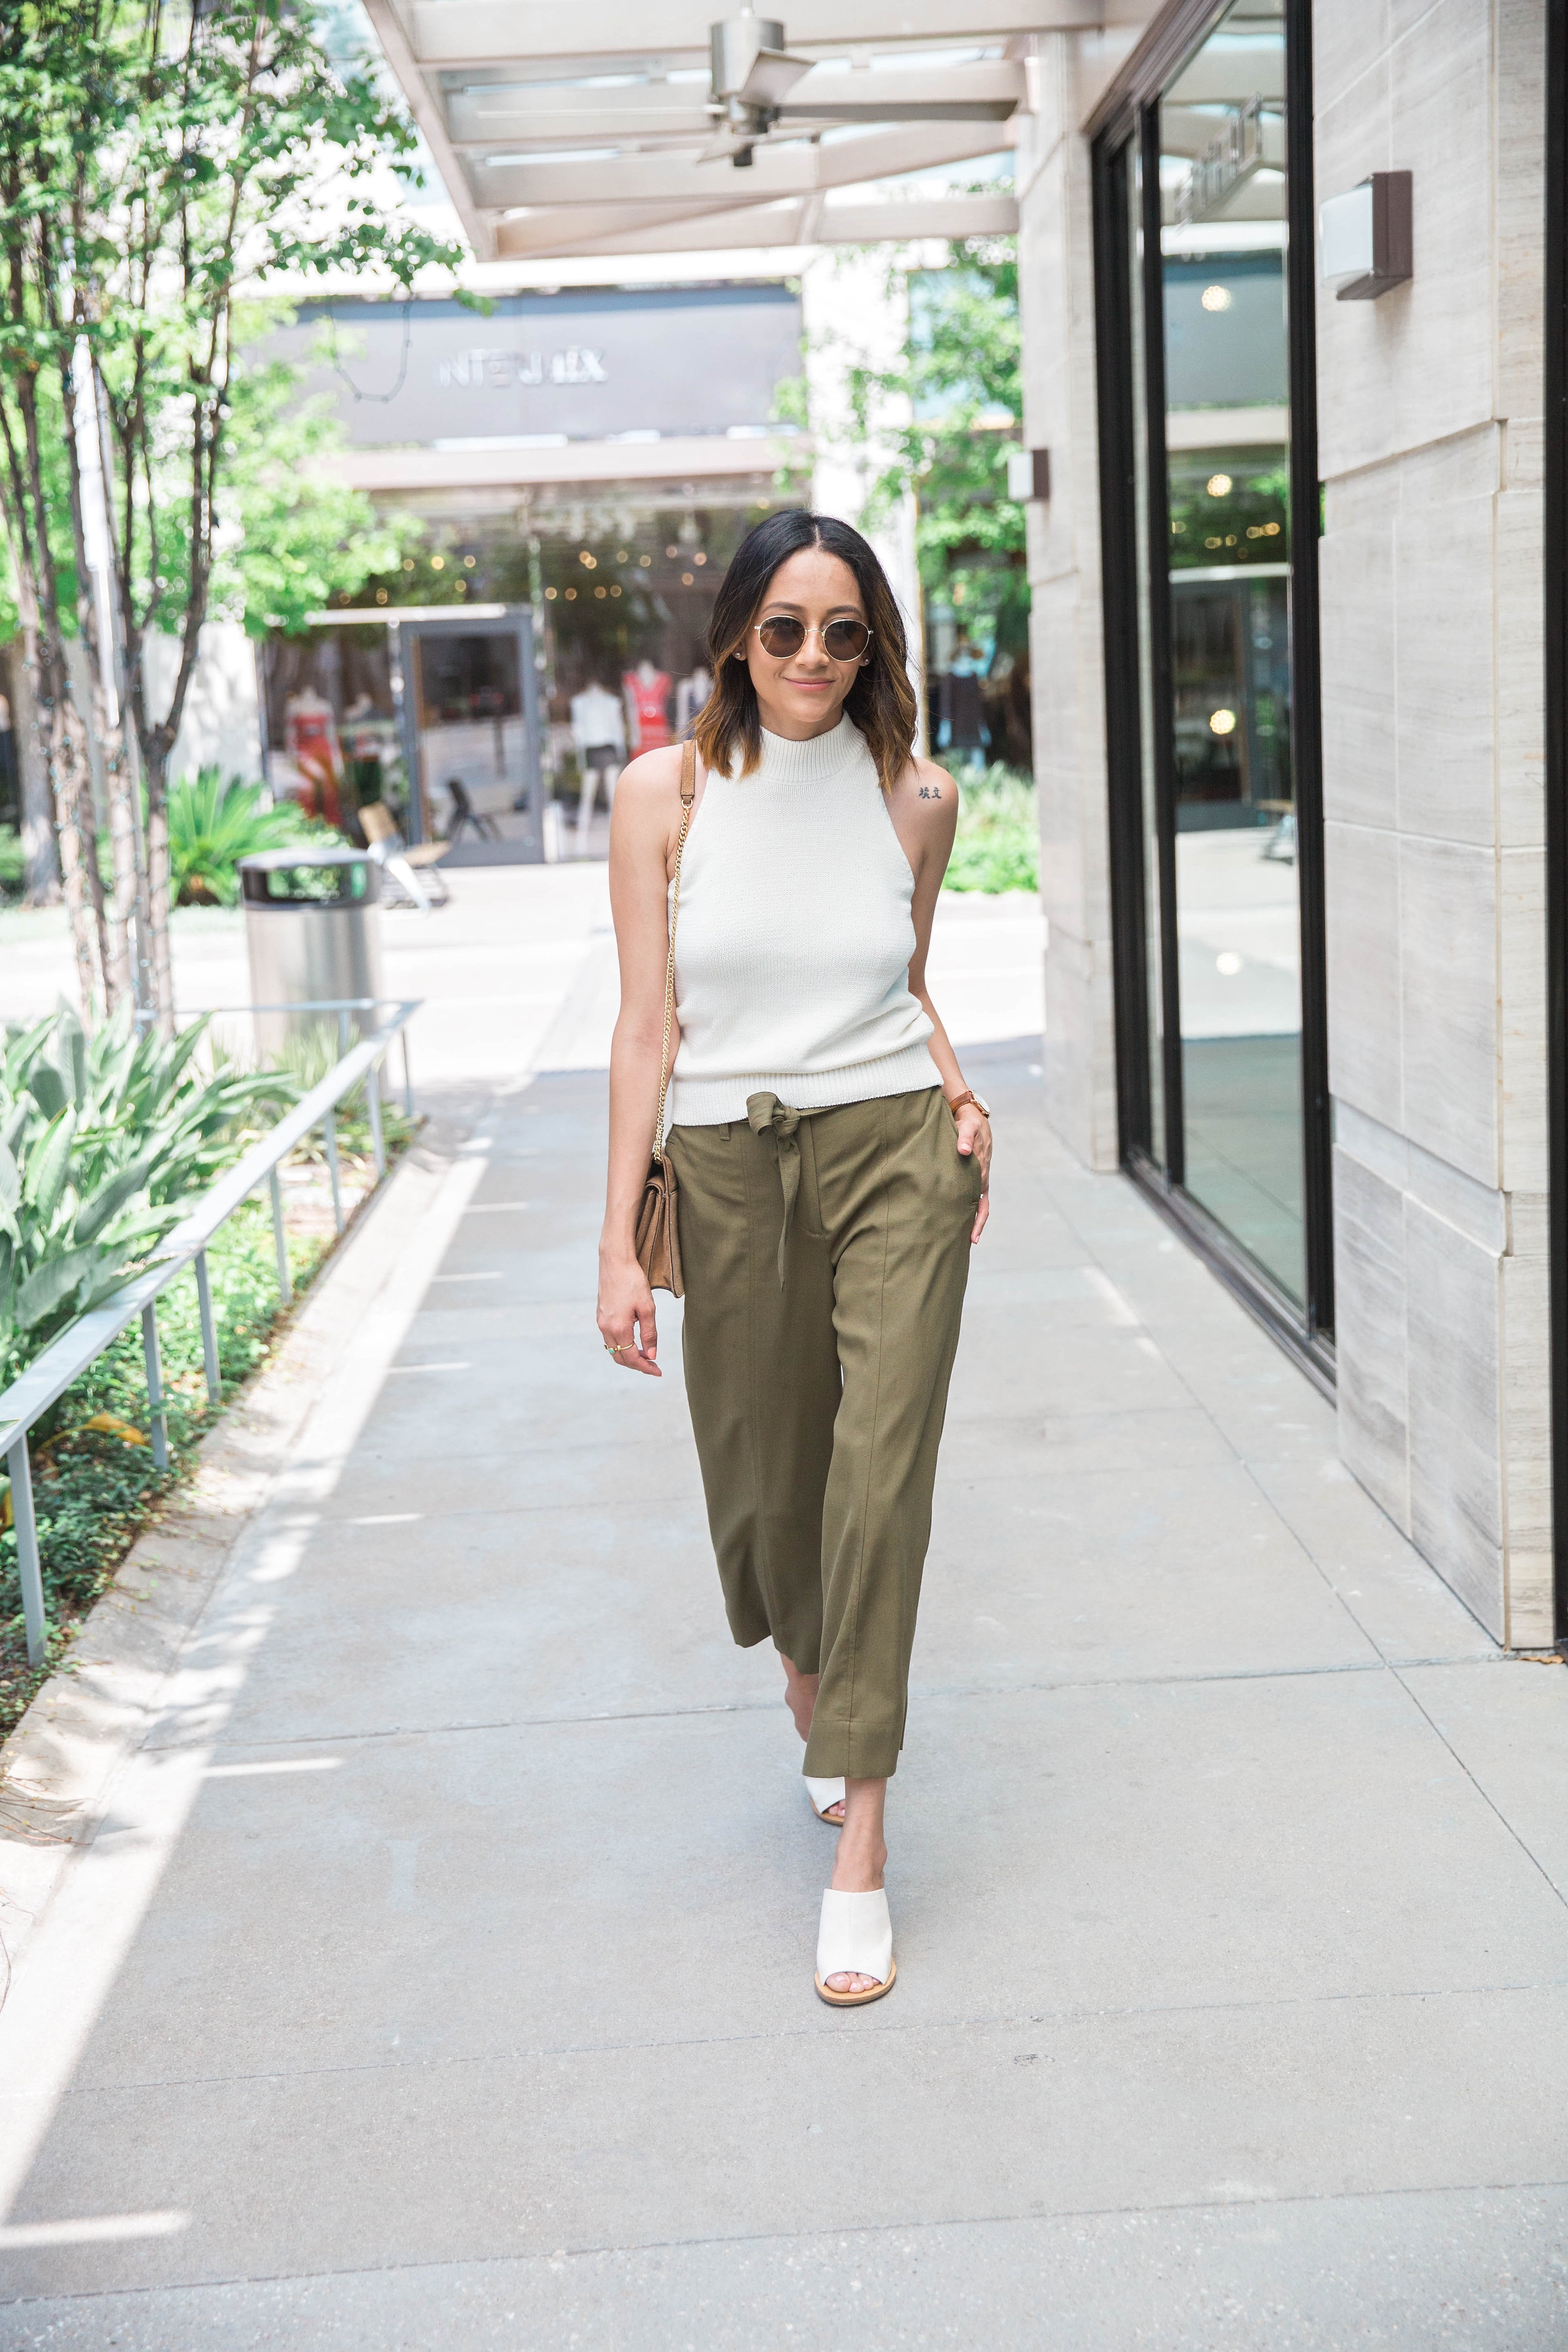 All Transitional Separates And How To Wear Them When The Season Changes